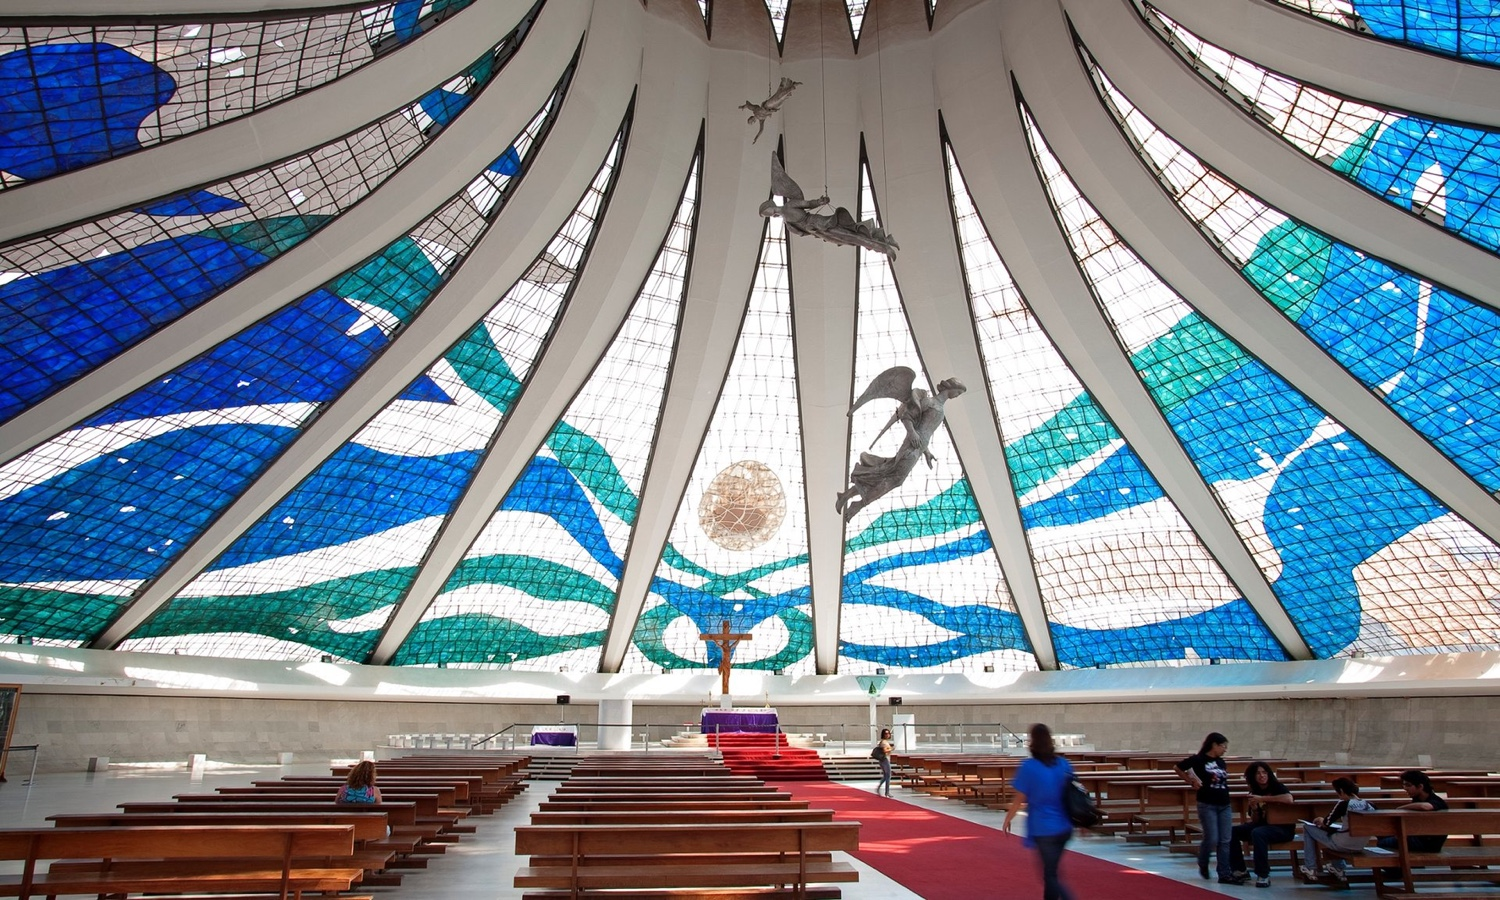 Catedral de Brasília interior. Photo © 2016 Guardian News and Media Limited.